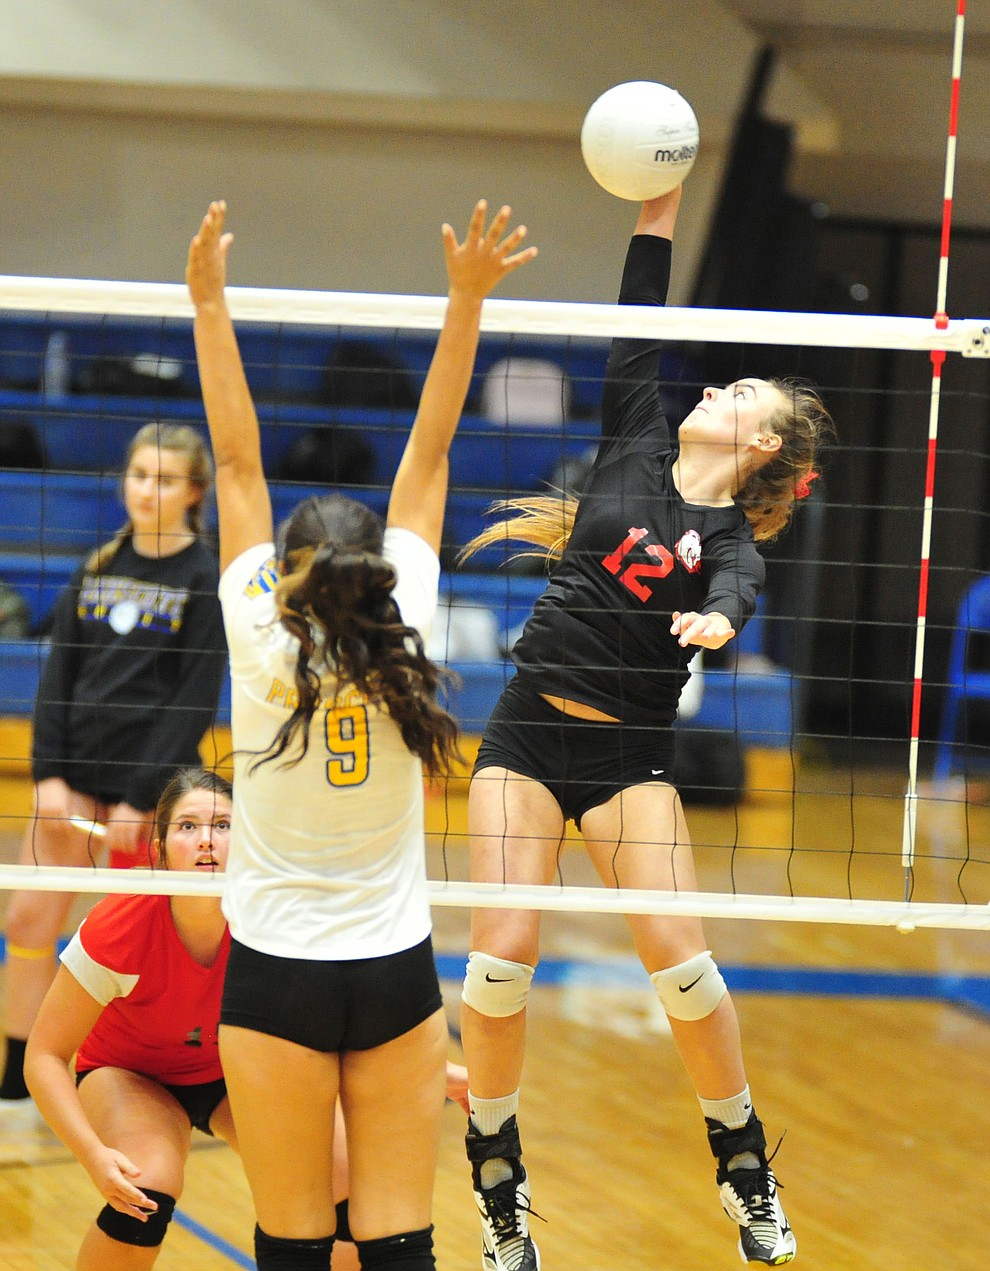 Bradshaw Mountain's Jordyn Moser goes for a cross court kill as the Bears traveled to Prescott for a cross-town volleyball matchup against the Badgers Thursday Sept. 6, 2018. (Les Stukenberg/Courier)